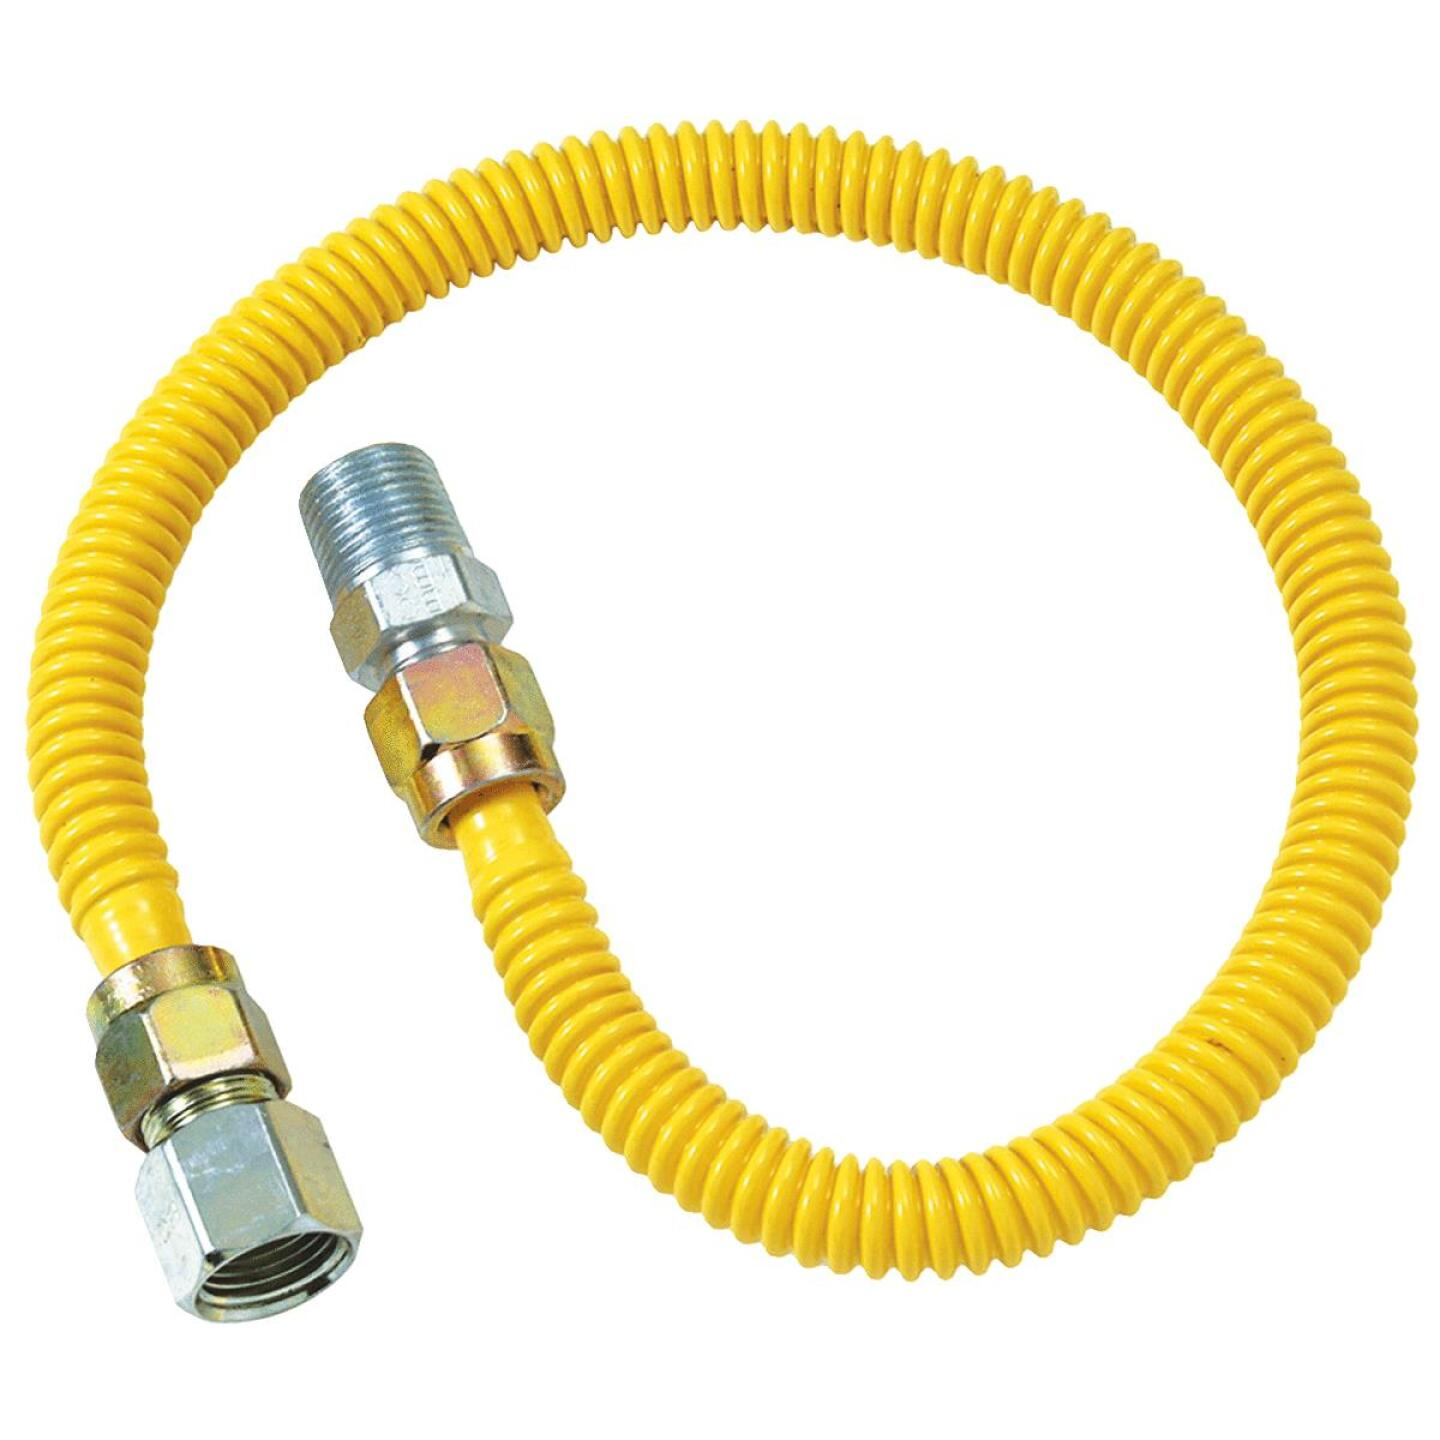 BrassCraft ProCoat 1/2 In. x 3/8 In. x 48 In. Gas Connector Image 1